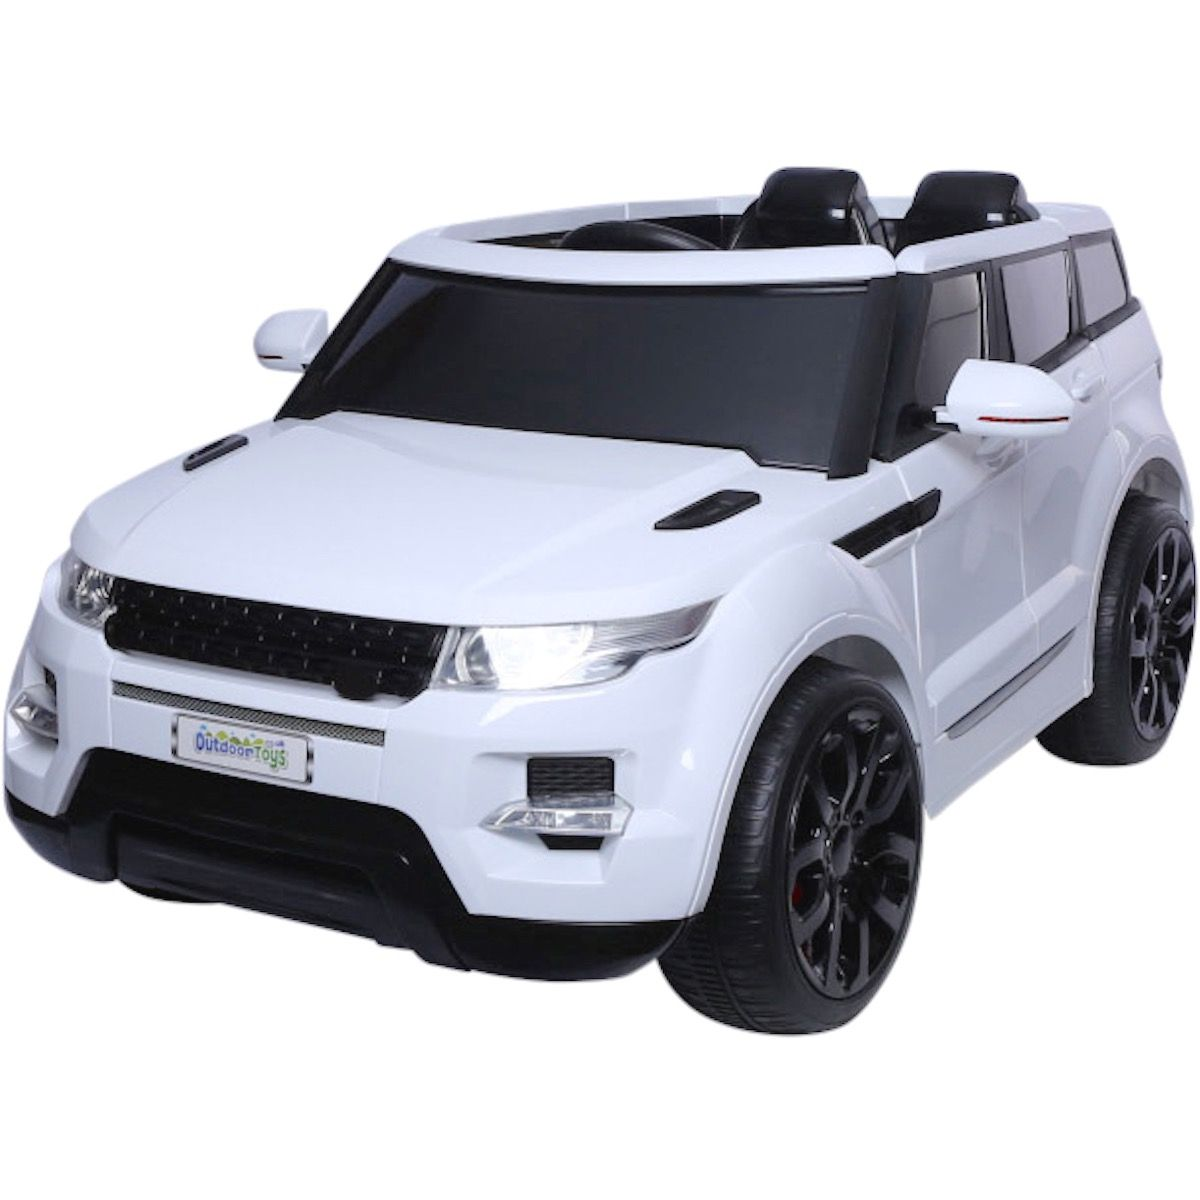 Electric Ride On Cars >> Maxi Range Rover Hse Sport Style 12v Electric Battery Ride On Car Jeep White Eva